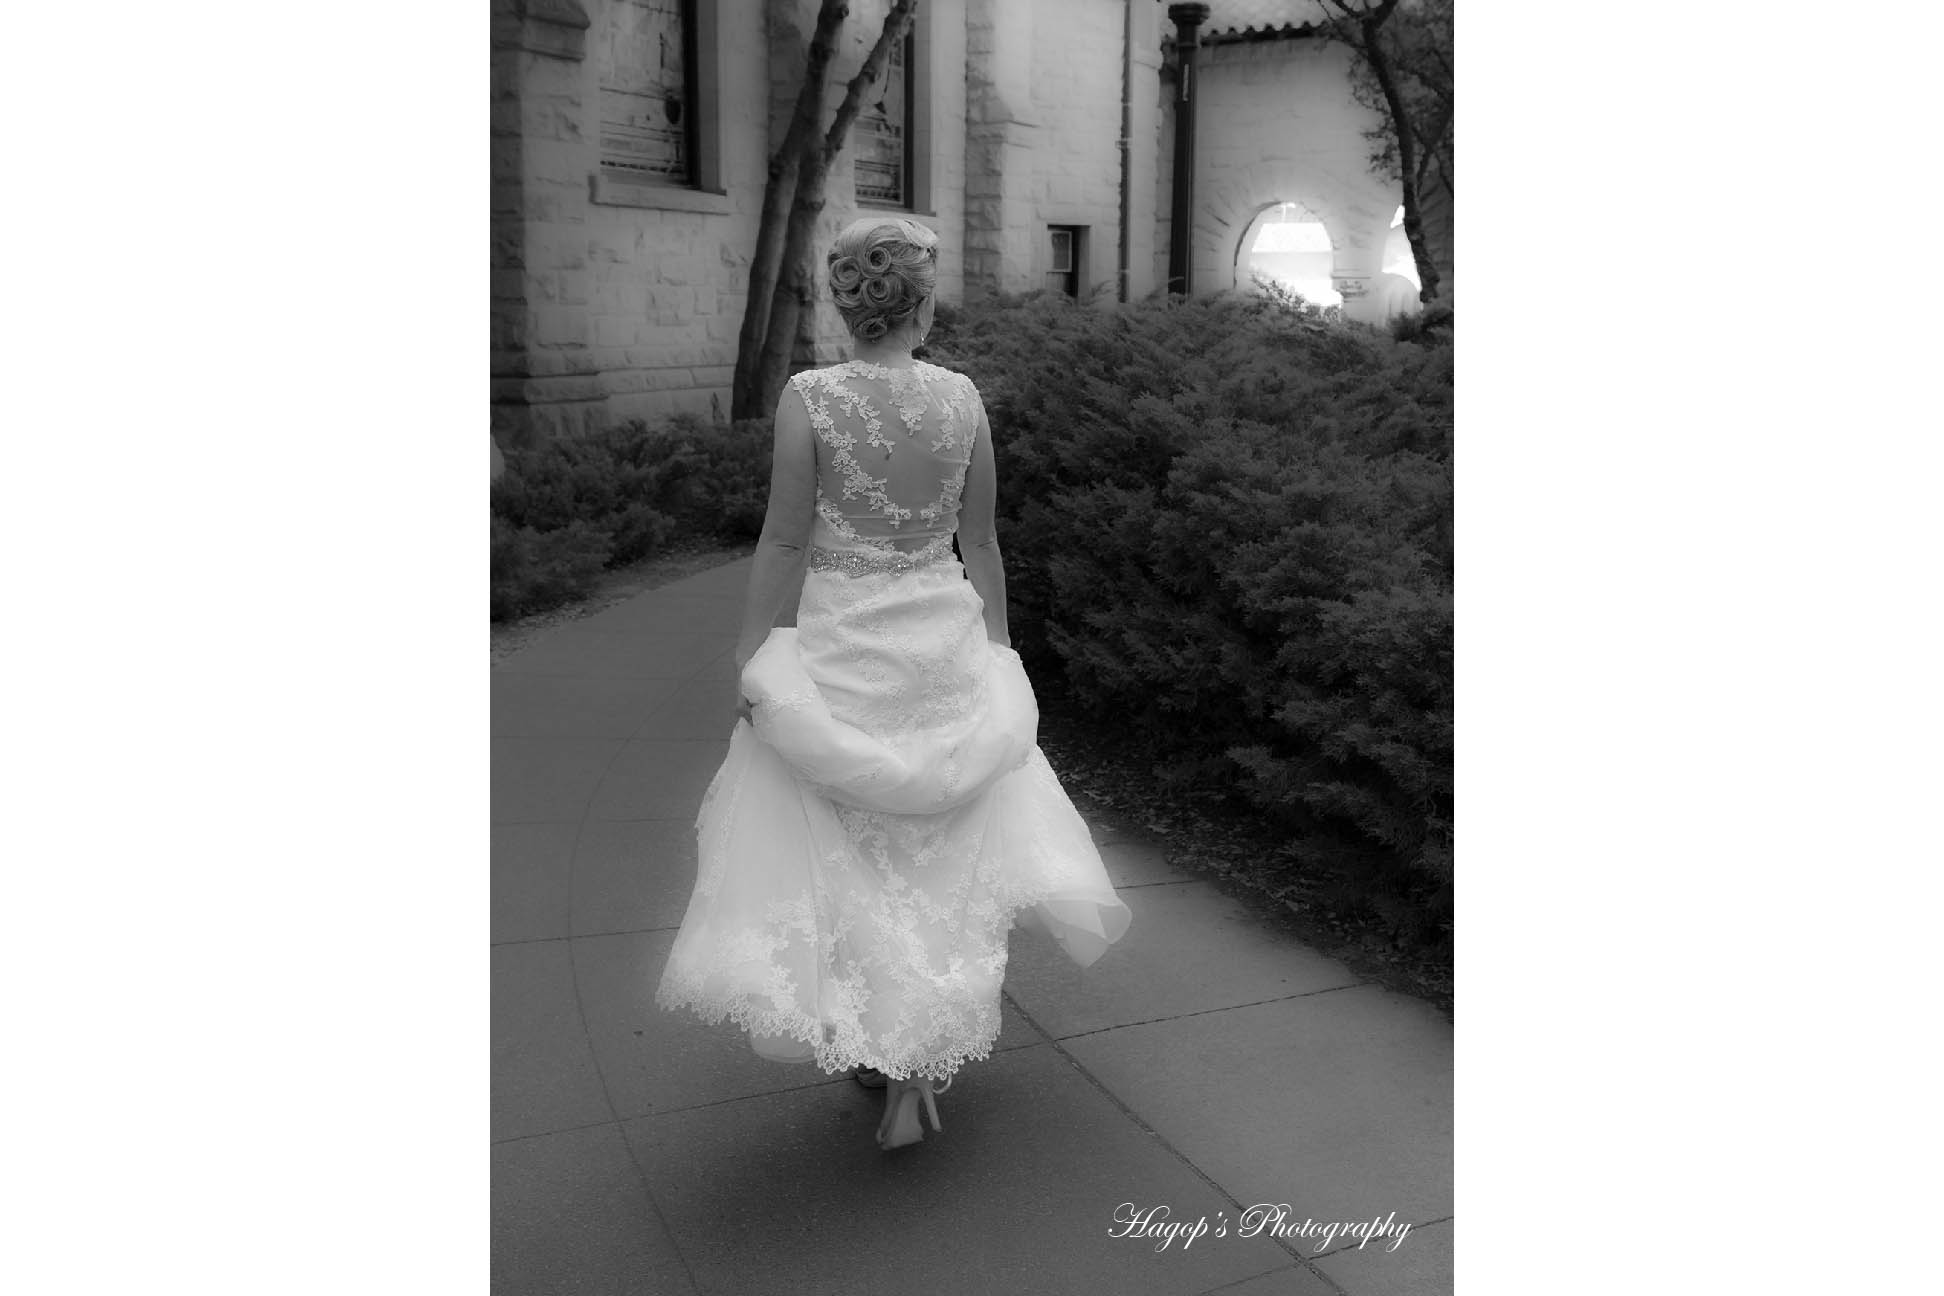 bride full length photo taken from her back to show her dress